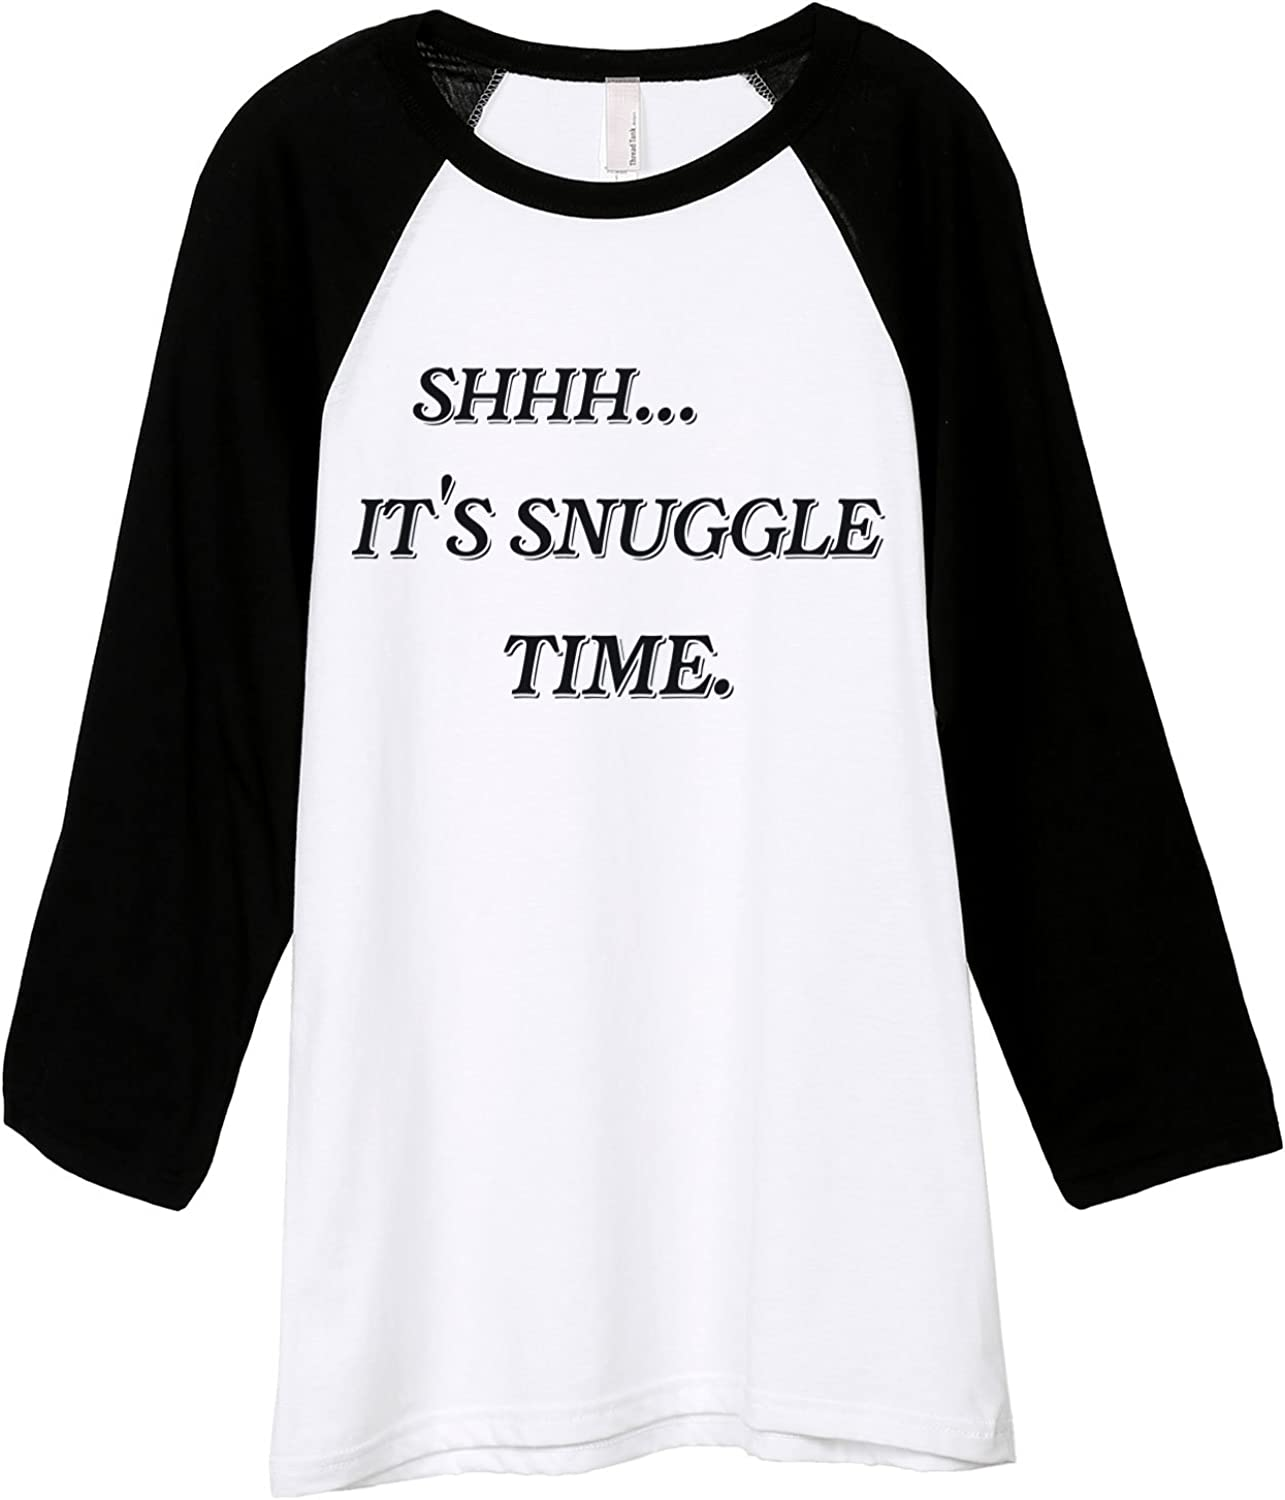 TooLoud Shhh Im Hungover Funny Dark Muscle Shirt